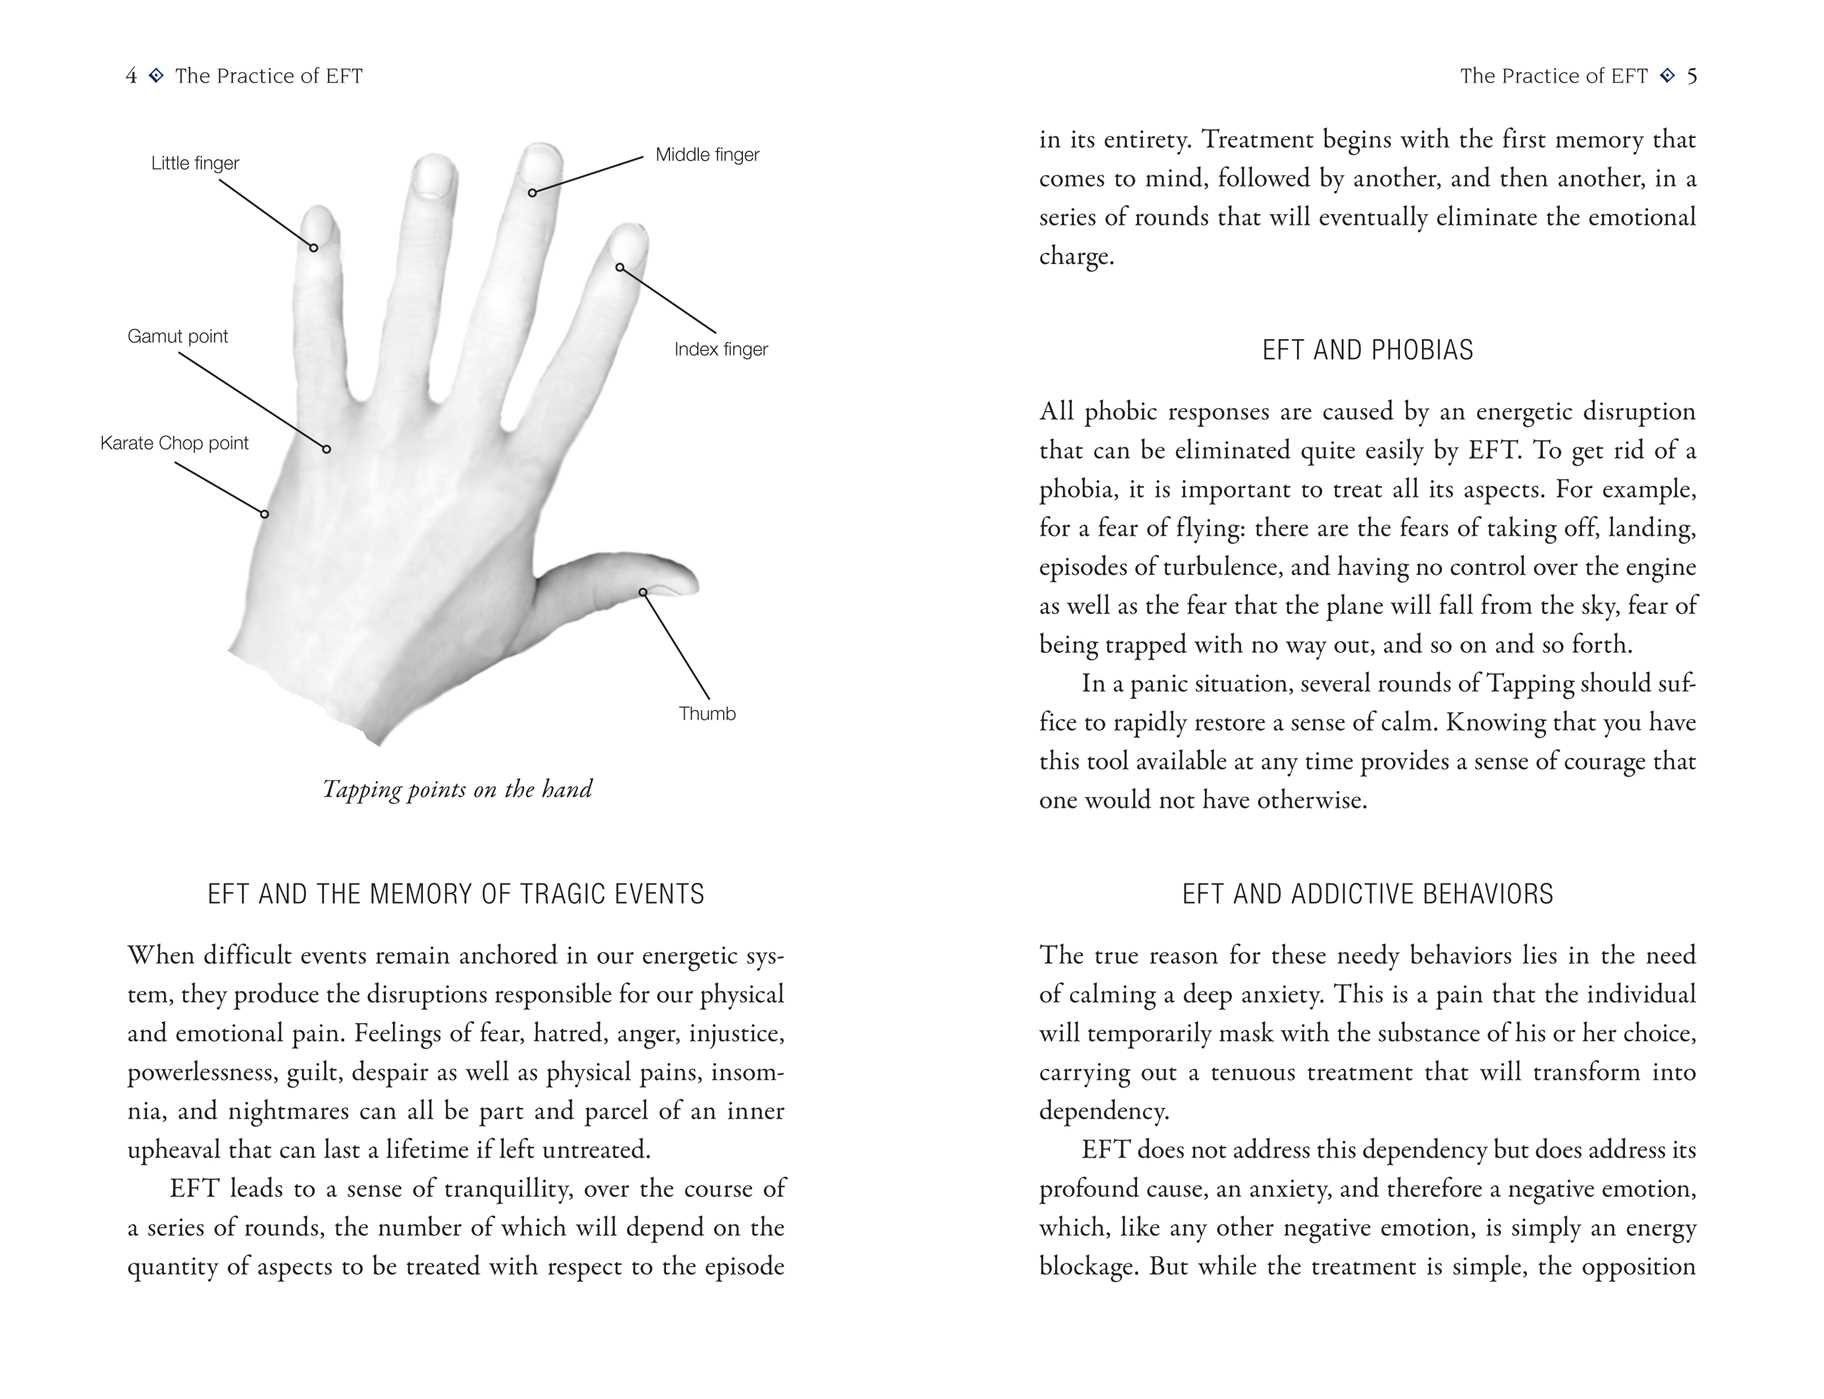 The book of tapping emotional acupressure with eft sophie merle the book of tapping emotional acupressure with eft sophie merle 9781620556016 amazon books nvjuhfo Gallery